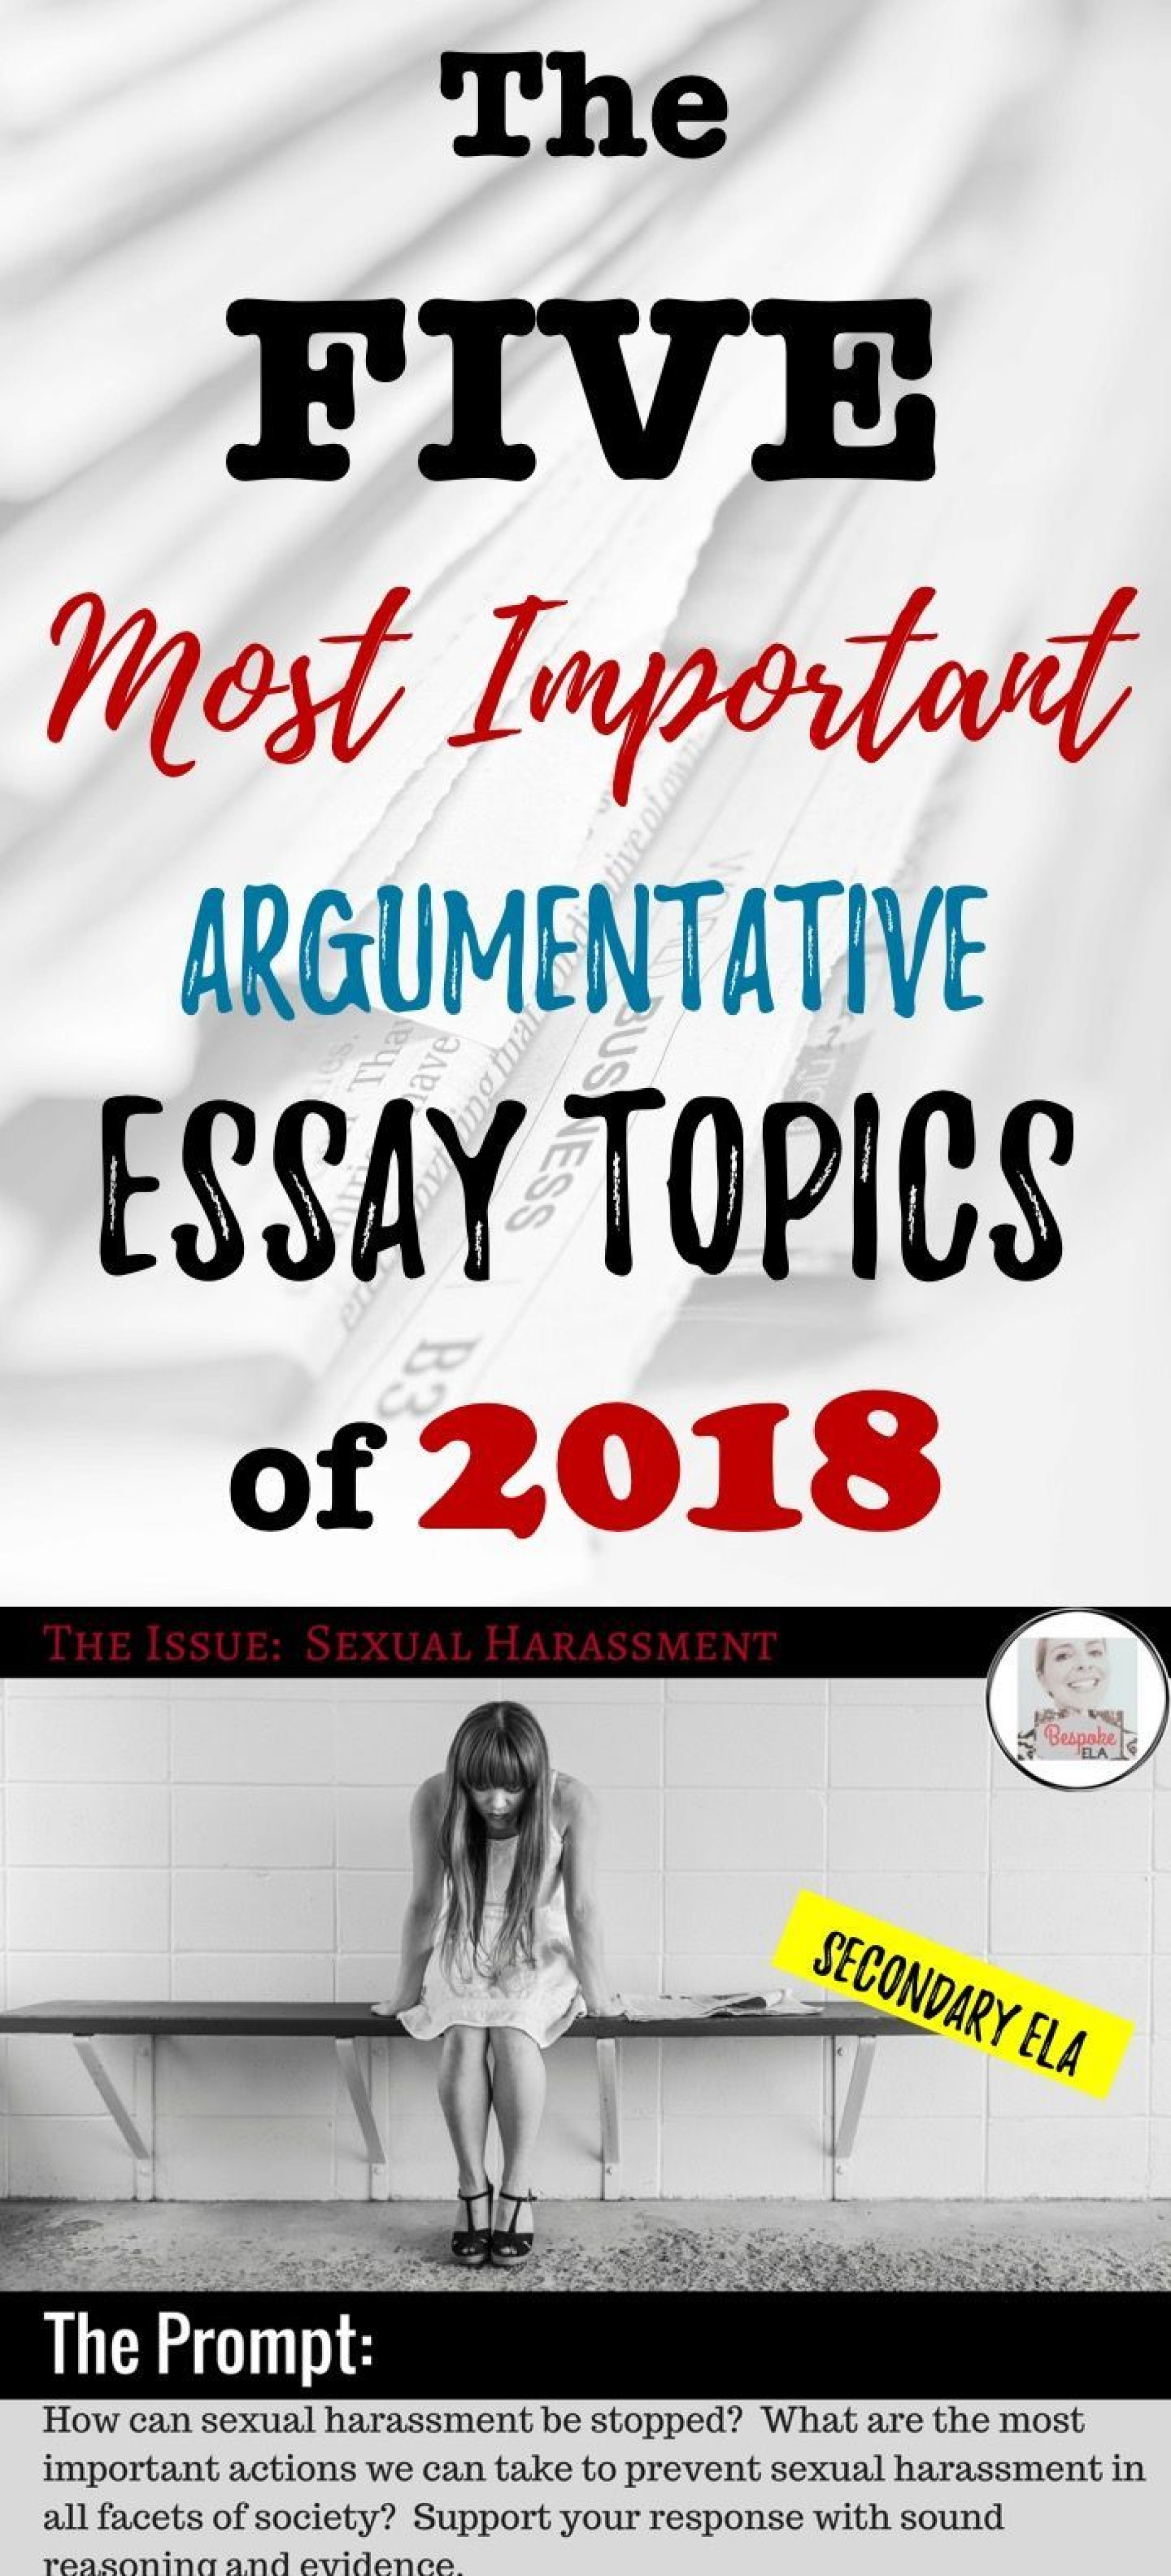 005 Argumentative Topics Research Paper Stupendous 2018 Rogerian Essay In The Philippines 1920